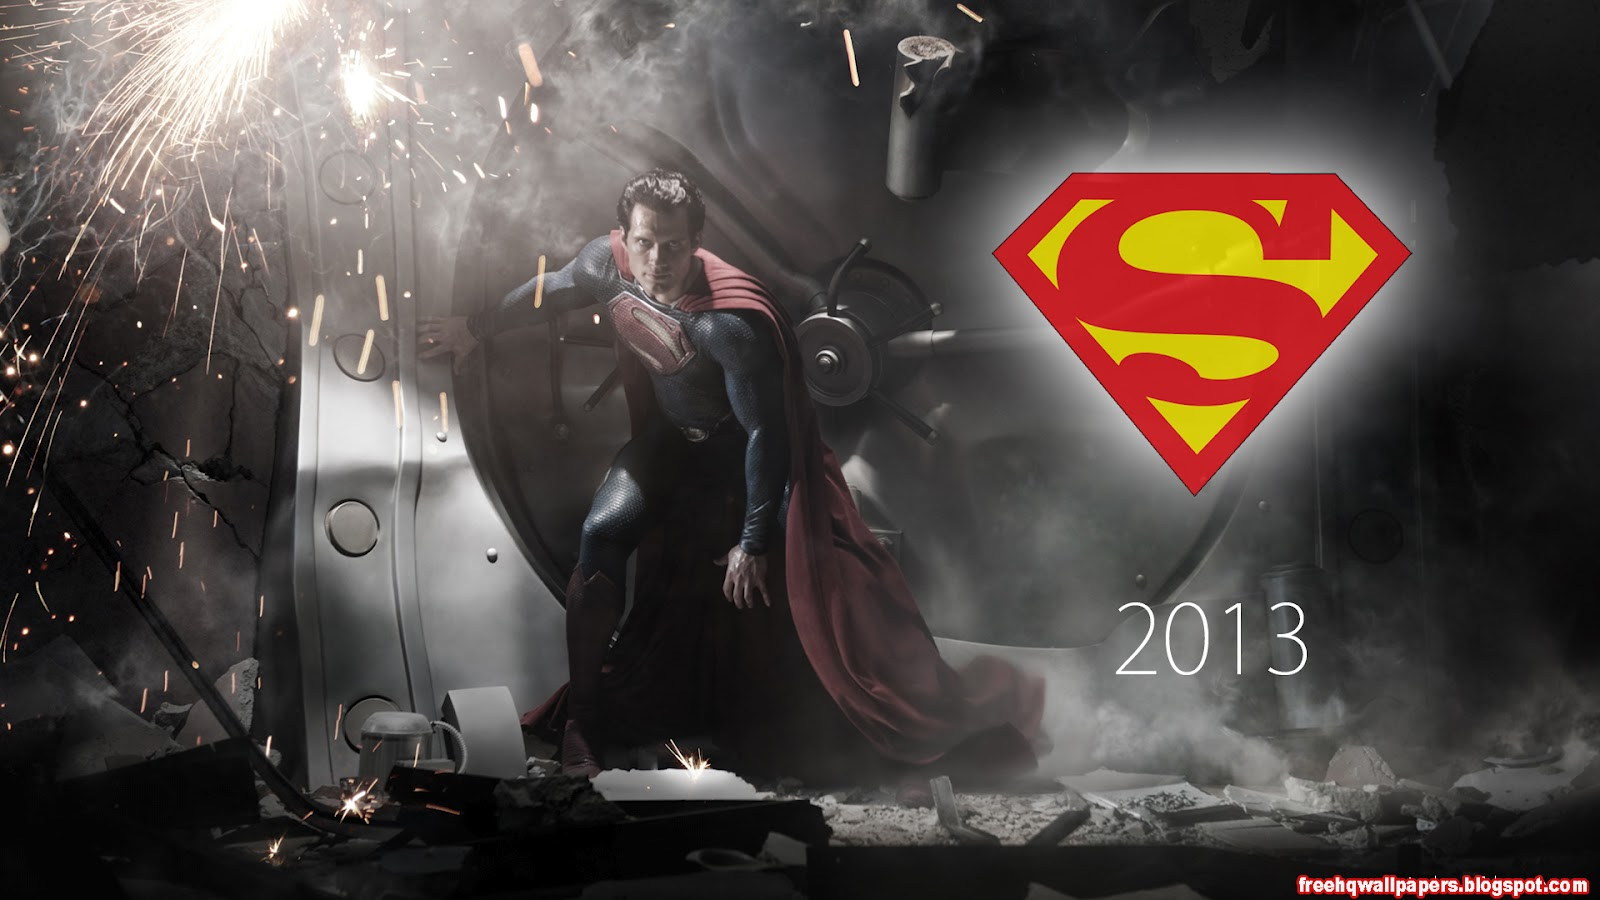 http://1.bp.blogspot.com/-bzAmZYVyp34/UBJSwLlRYeI/AAAAAAAACLk/Sd1l5xitV4M/s1600/Superman+Man+of+Steel+2013+HQ+HD+Wallpapers%7Bfreehqwallpapers.blogspot.com%7D+%288%29.jpg